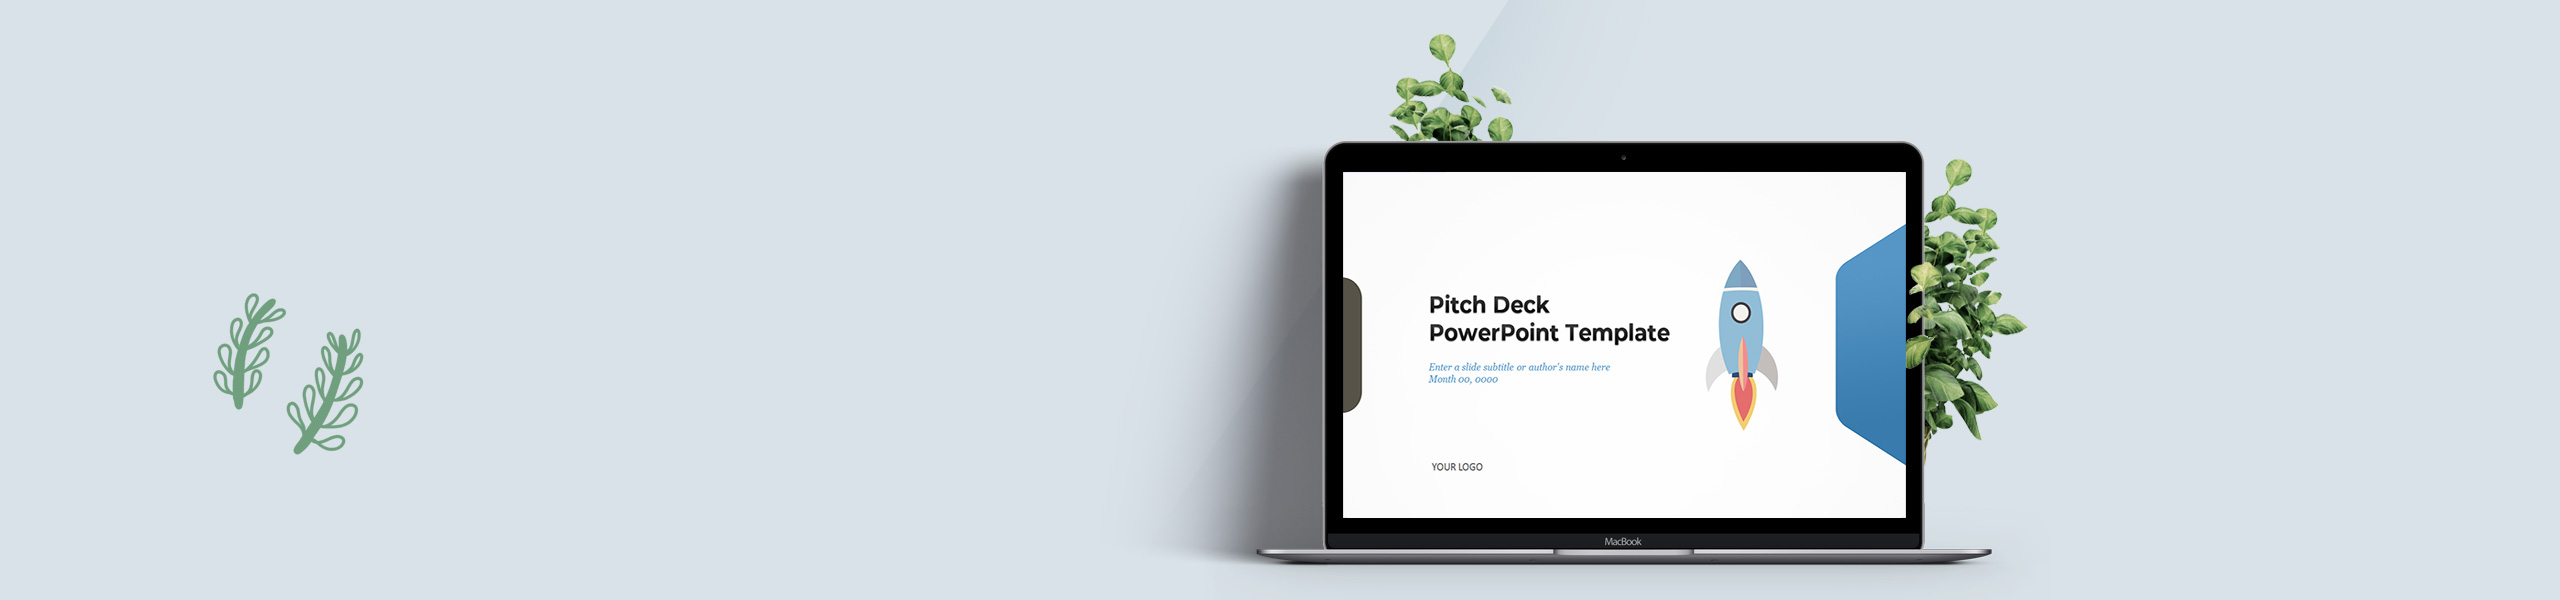 main_Pitch-Deck2